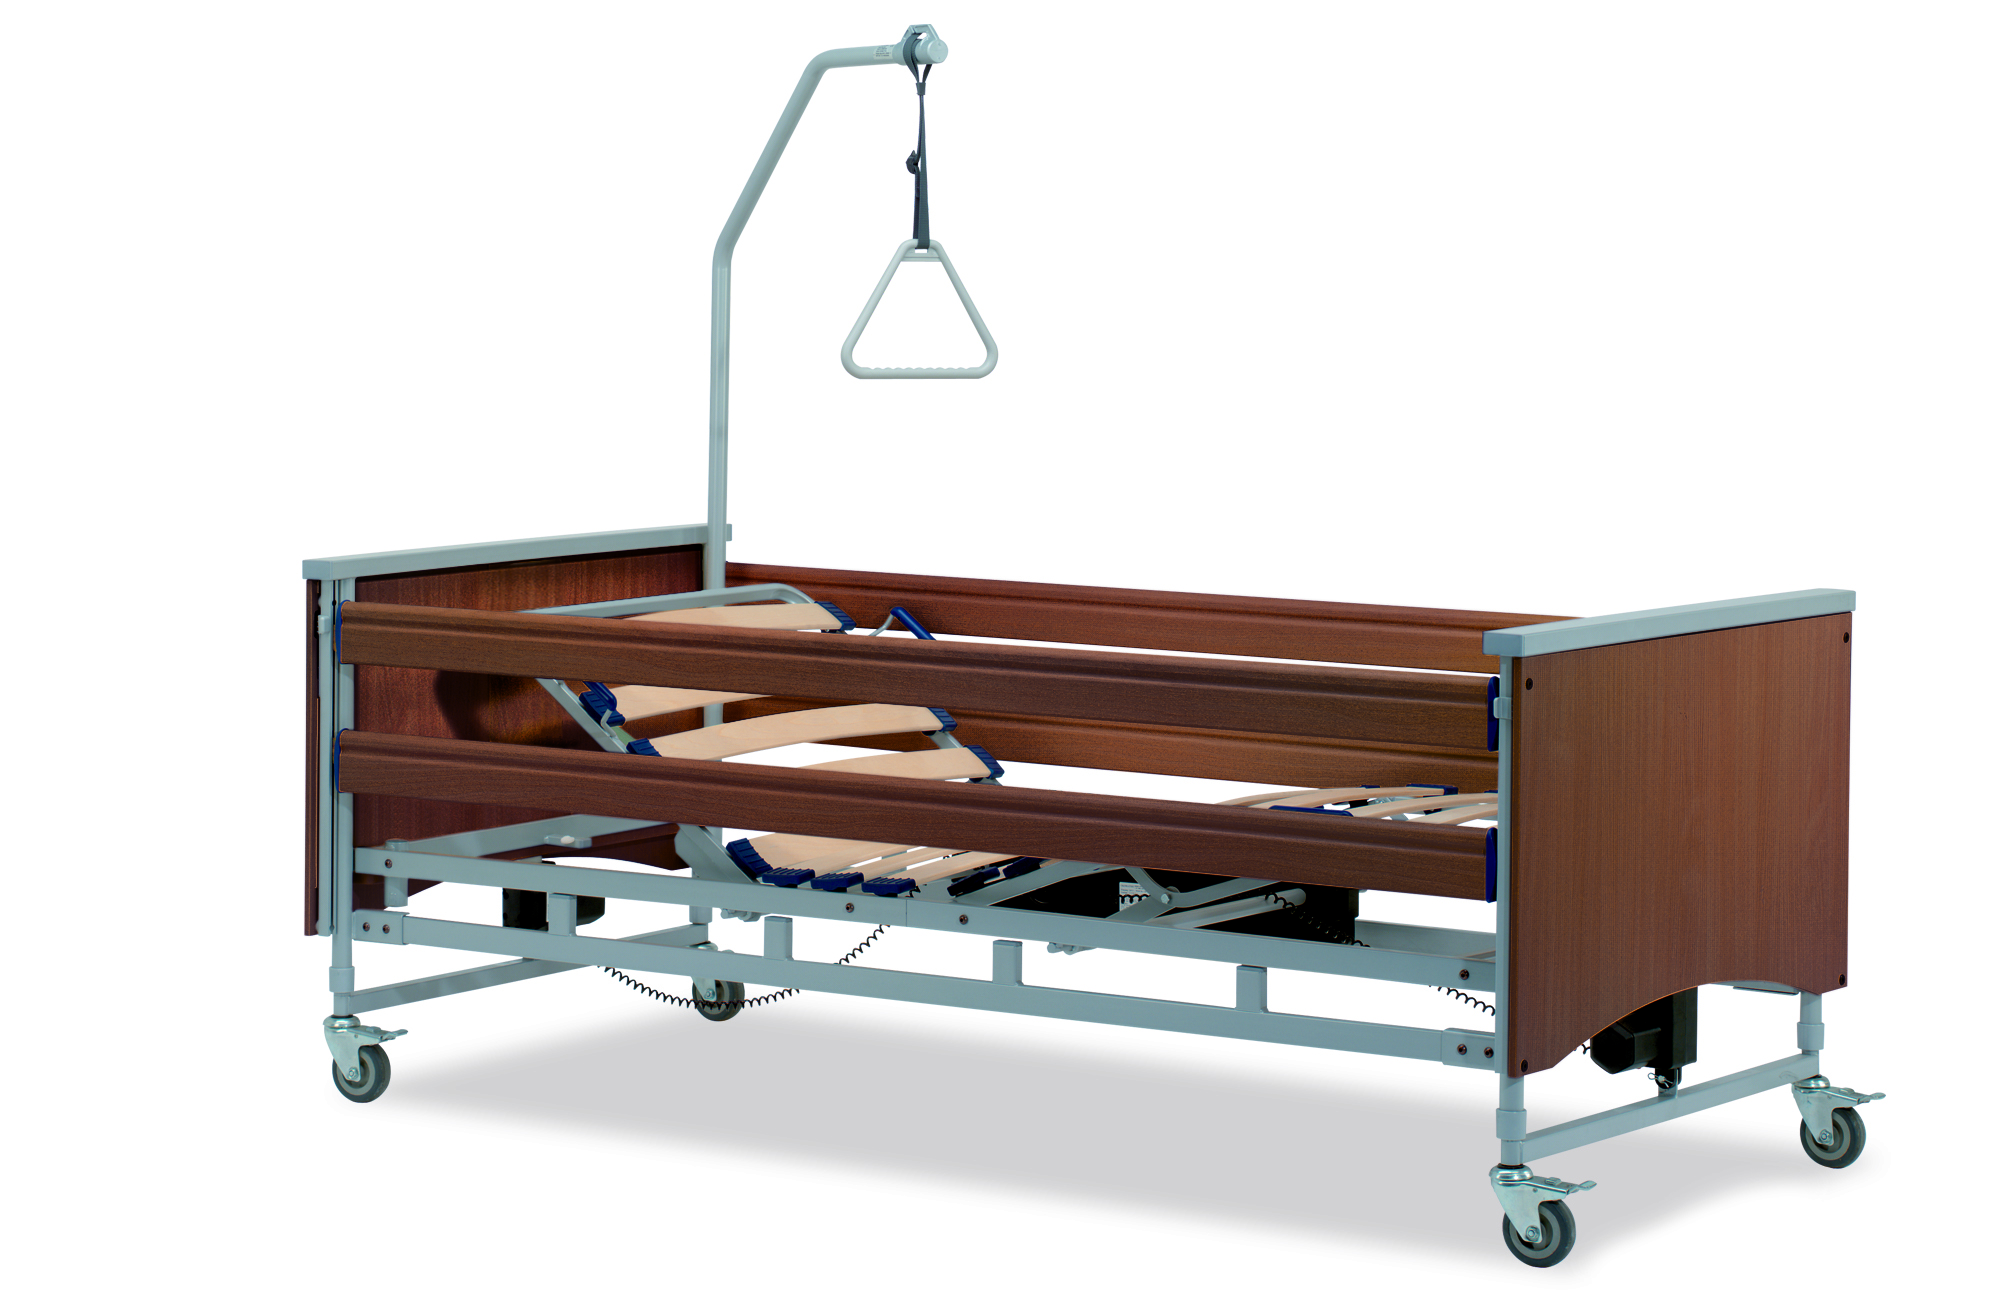 Where To Rent Adjustable Beds : Electric adjustable bed rental care to comfort